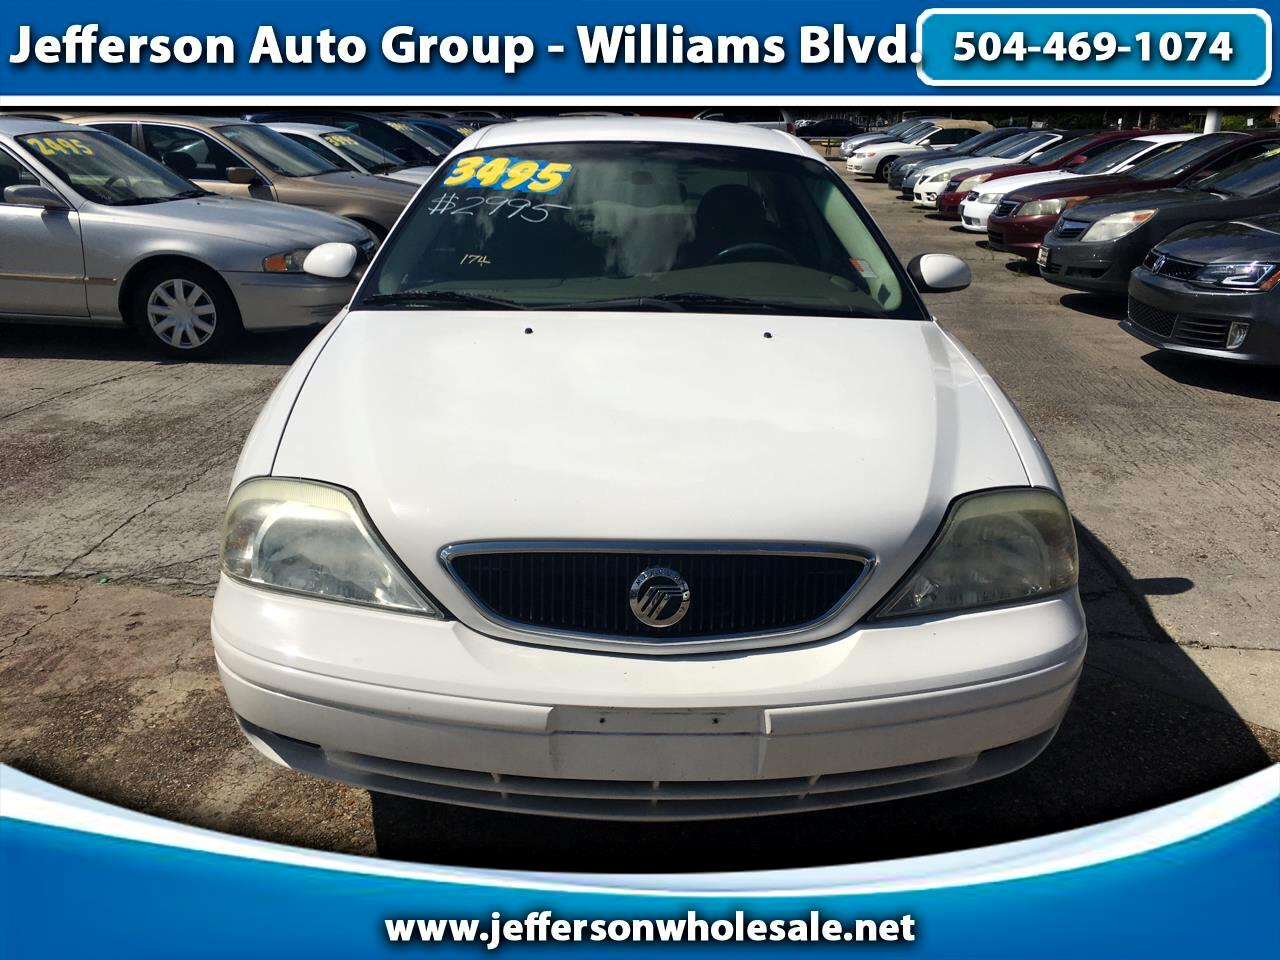 2003 Mercury Sable 4dr Sdn GS